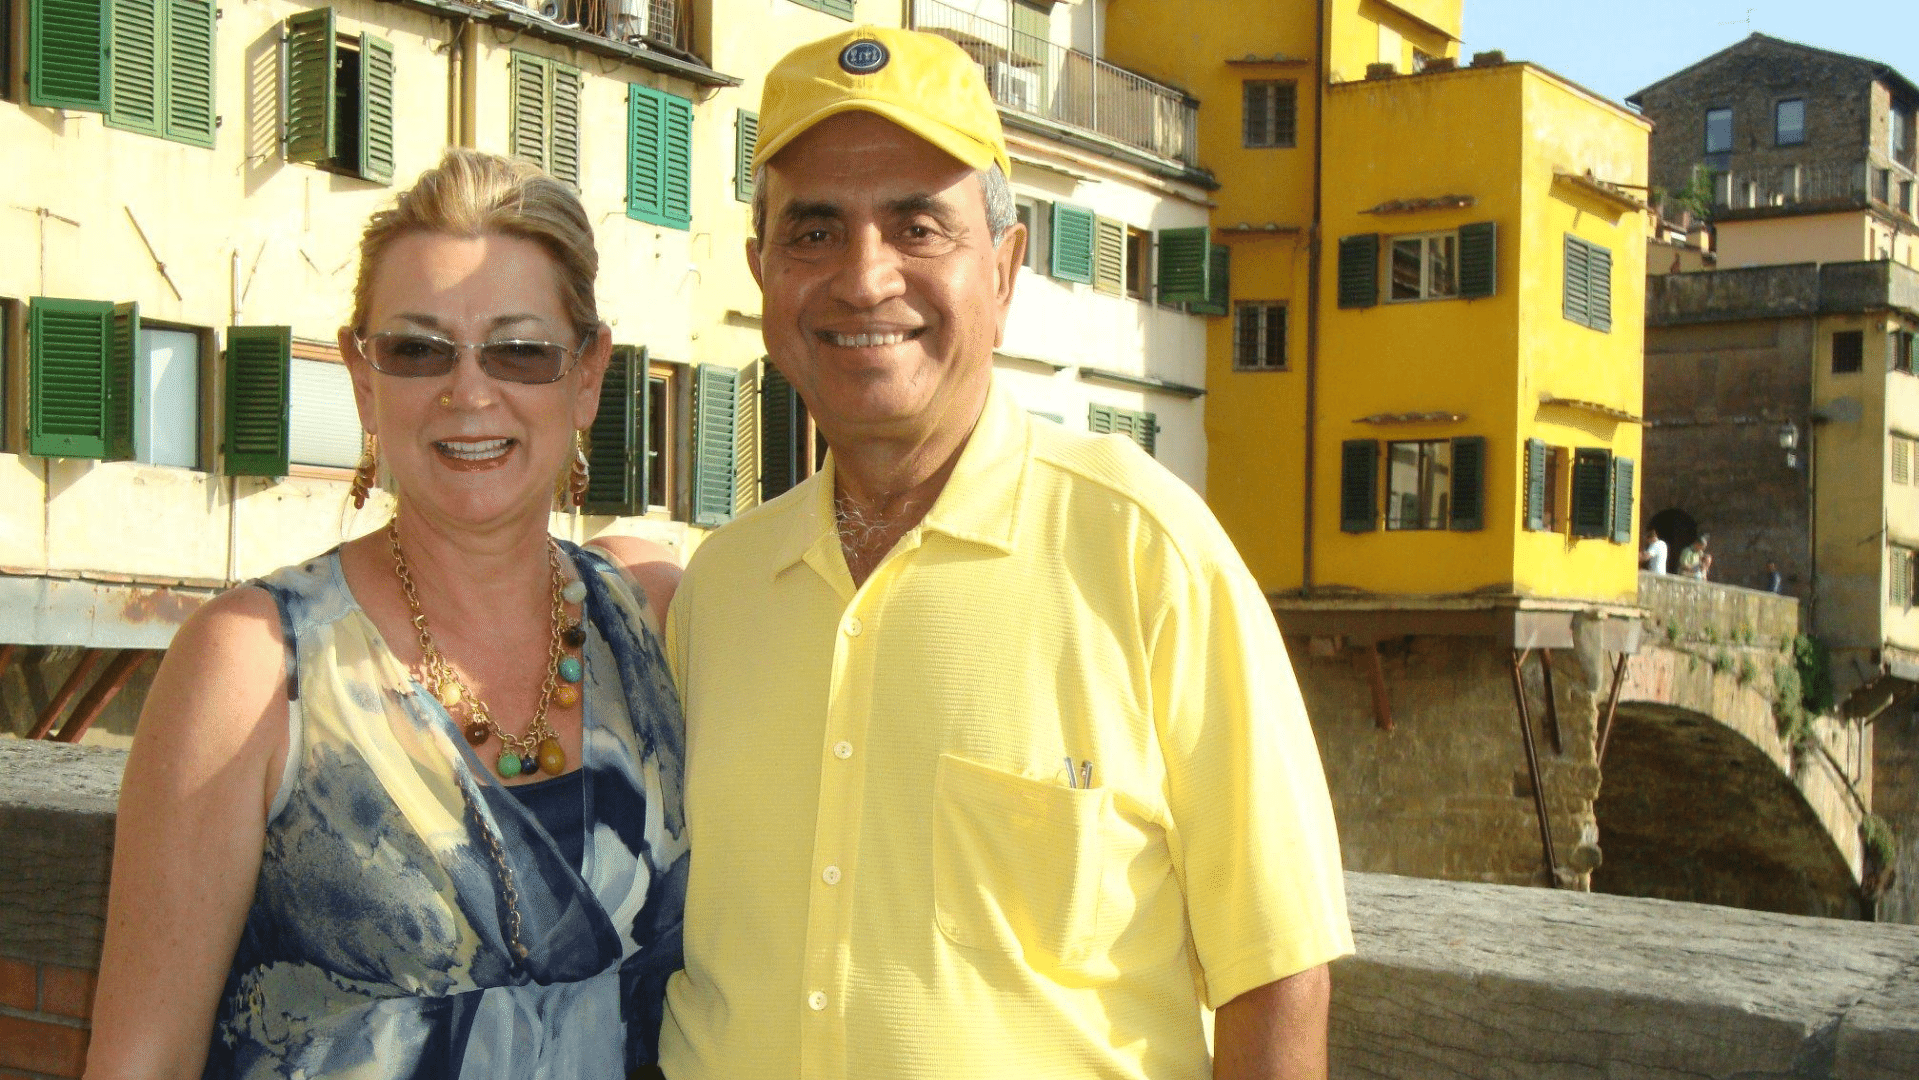 Isabel and Ajoy Banerjee in Italy